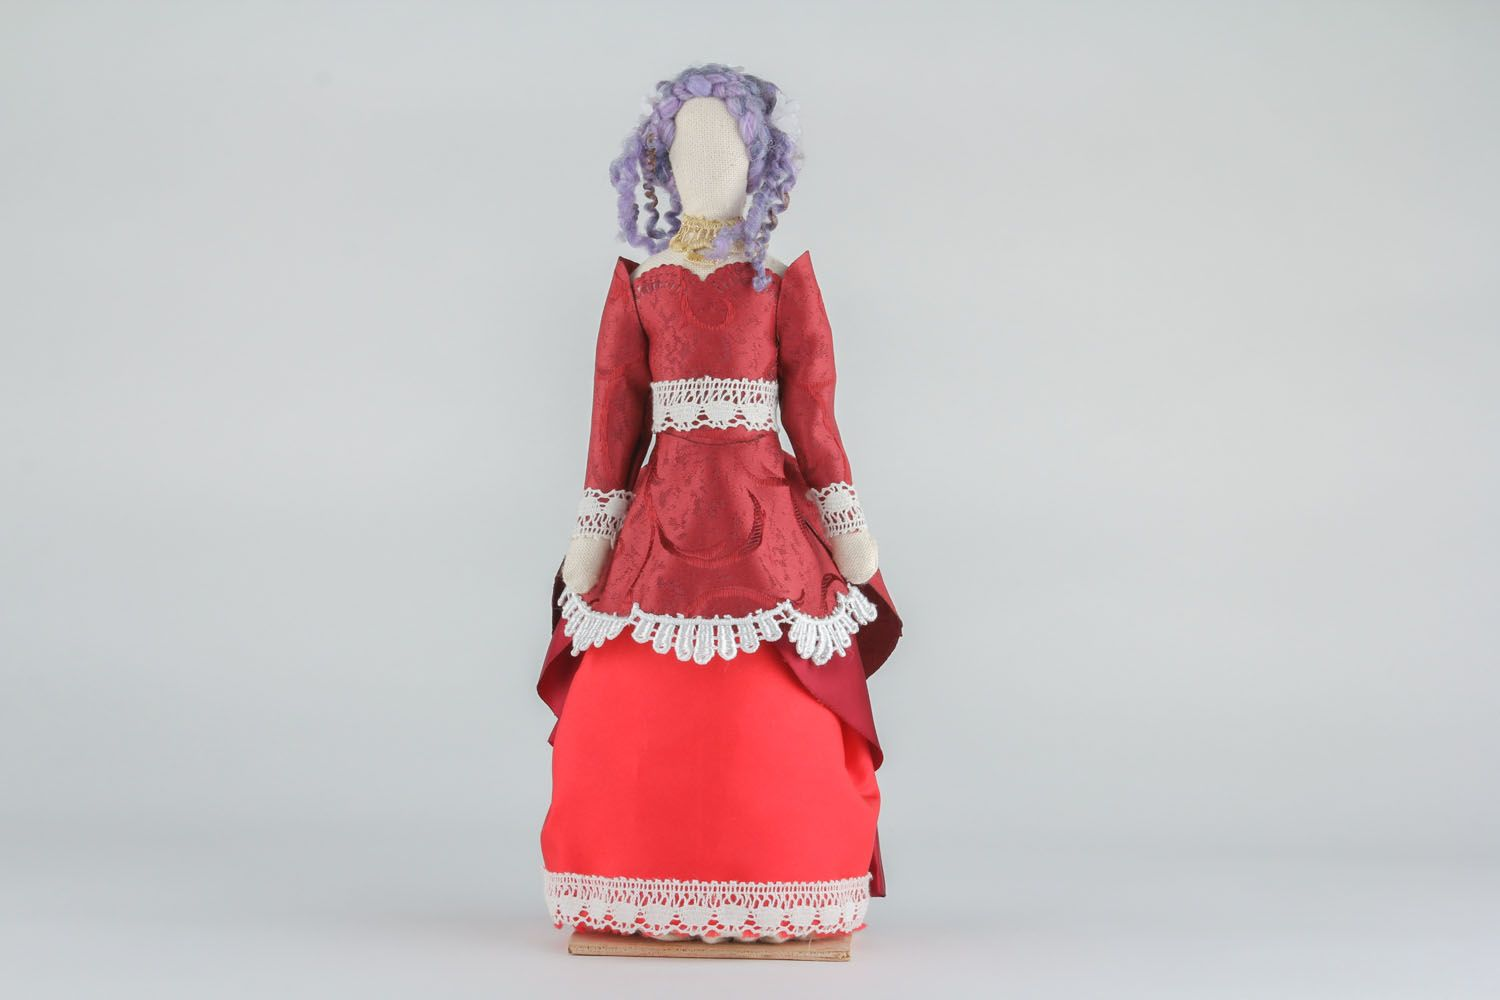 Doll in vintage dress photo 2